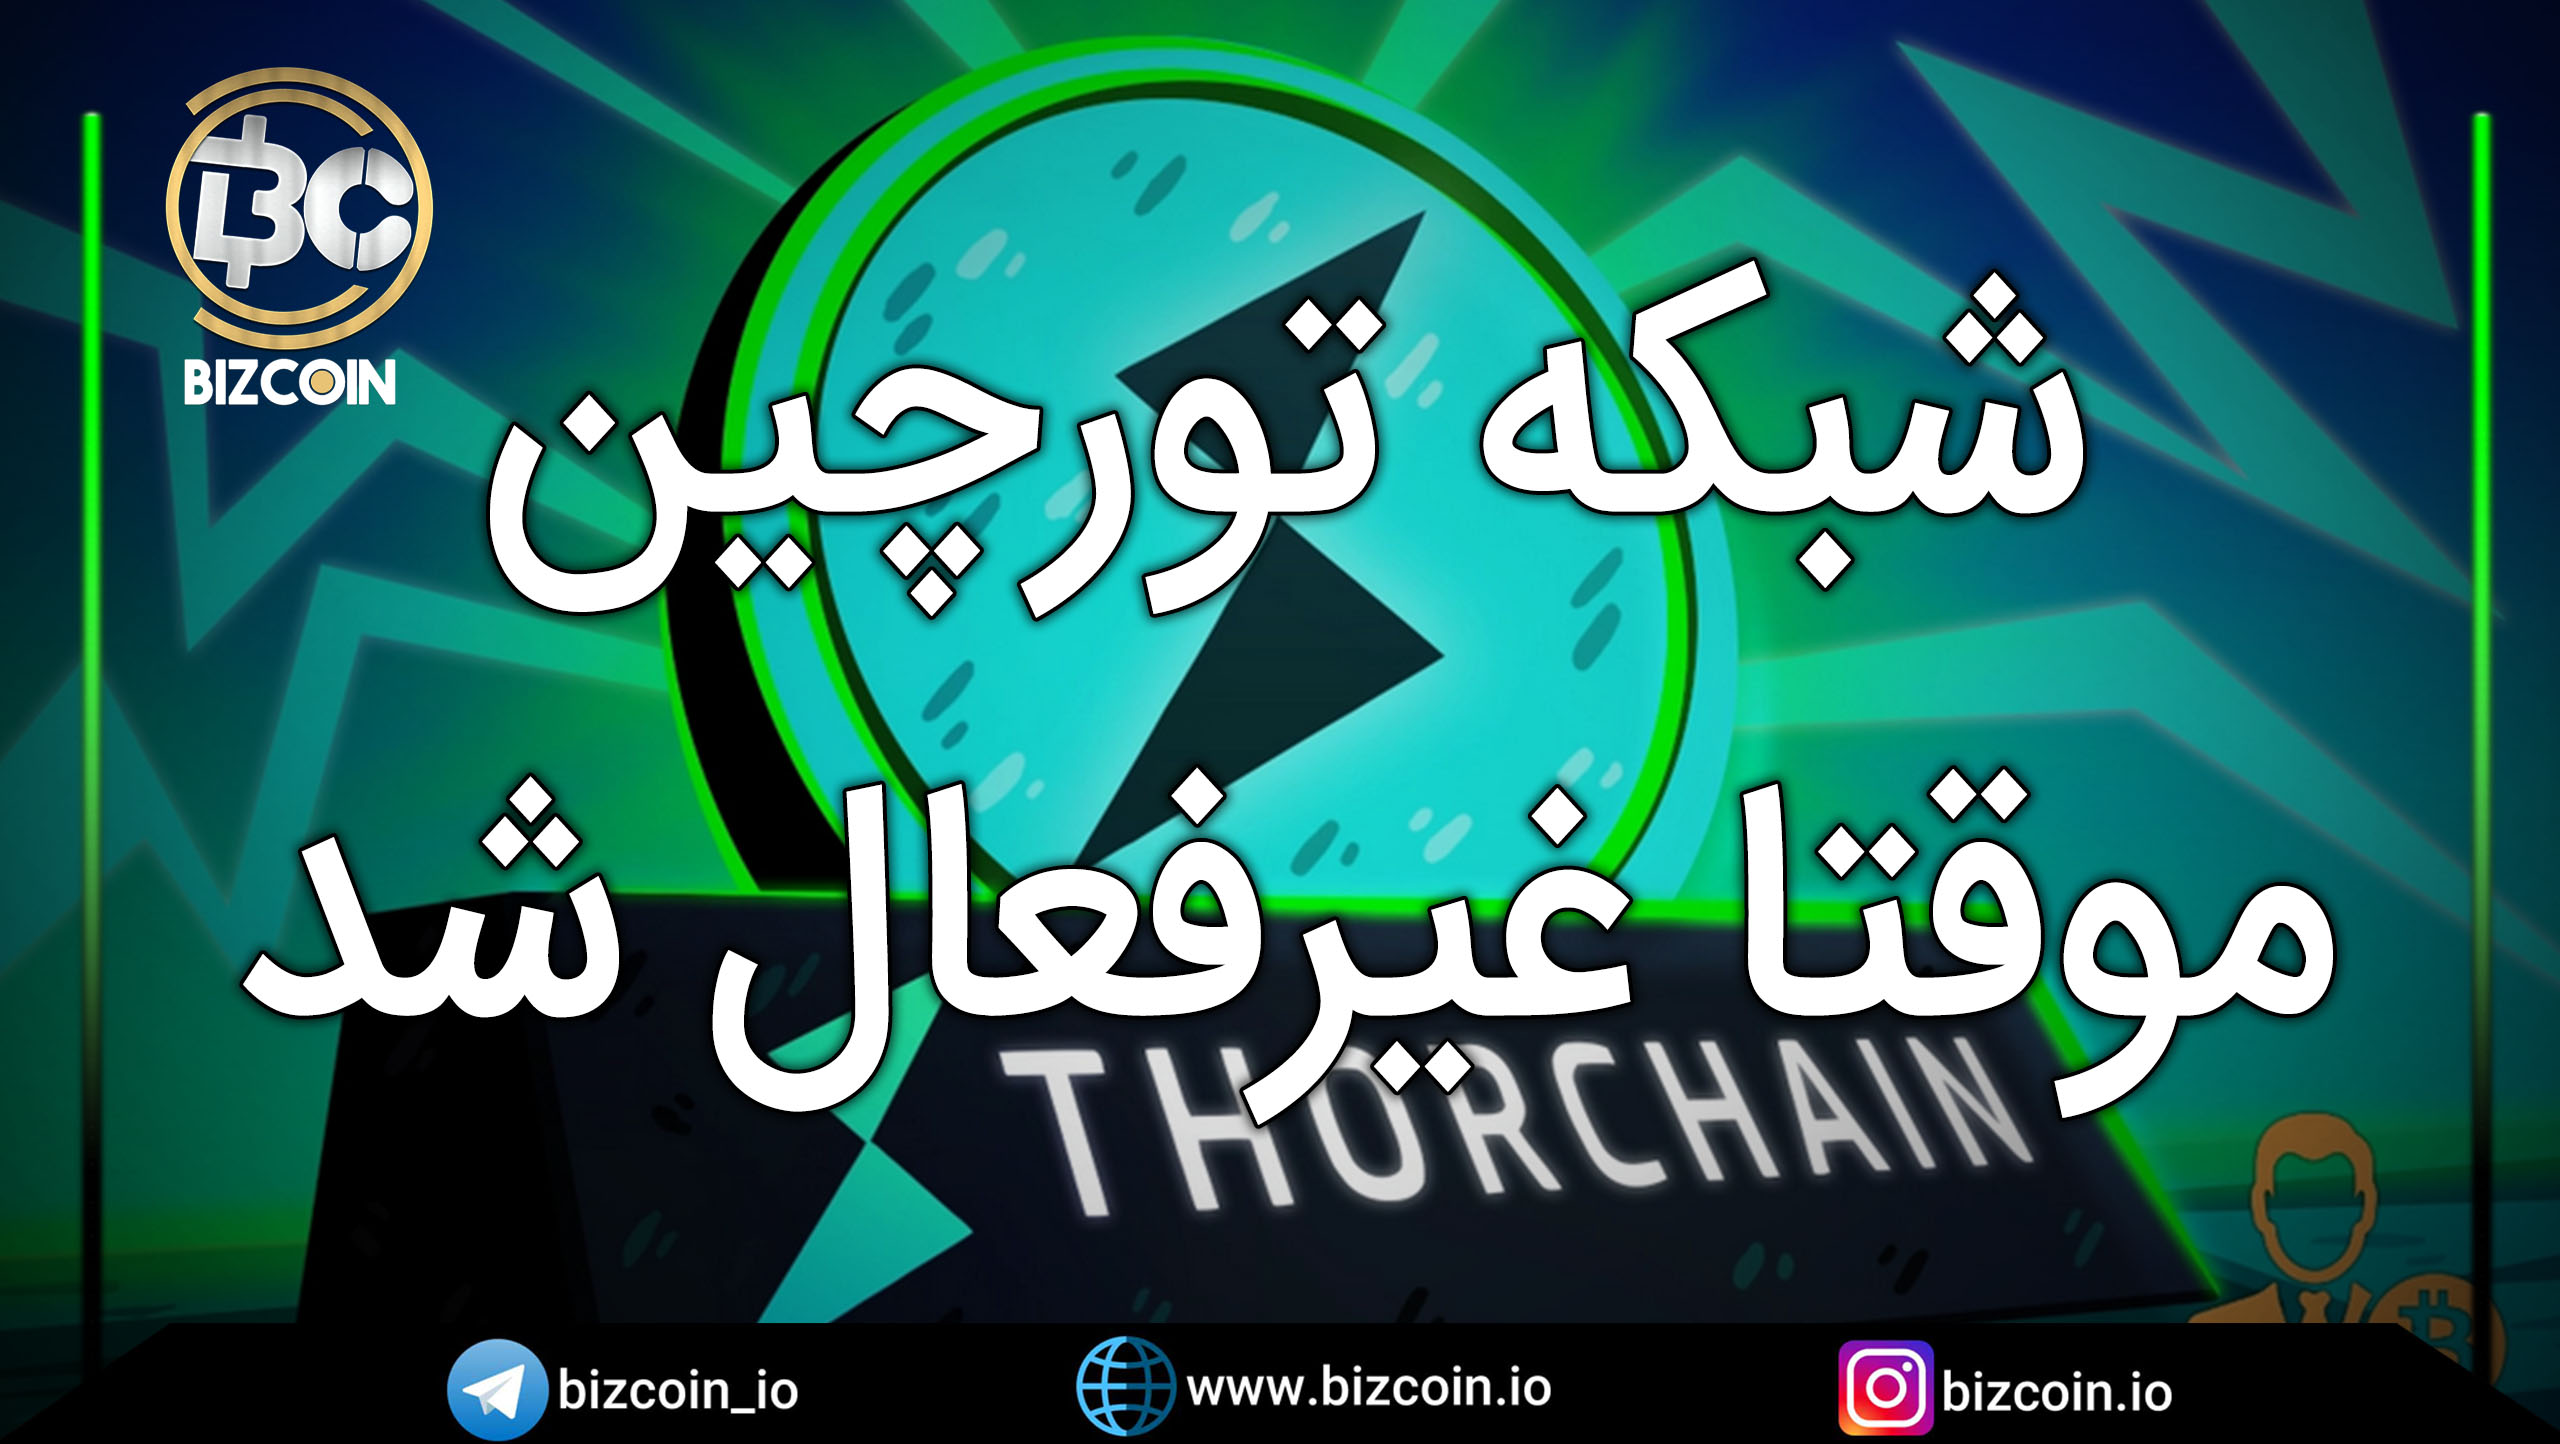 The thorchain network was temporarily disabled شبکه تورچین موقتا غیرفعال شد